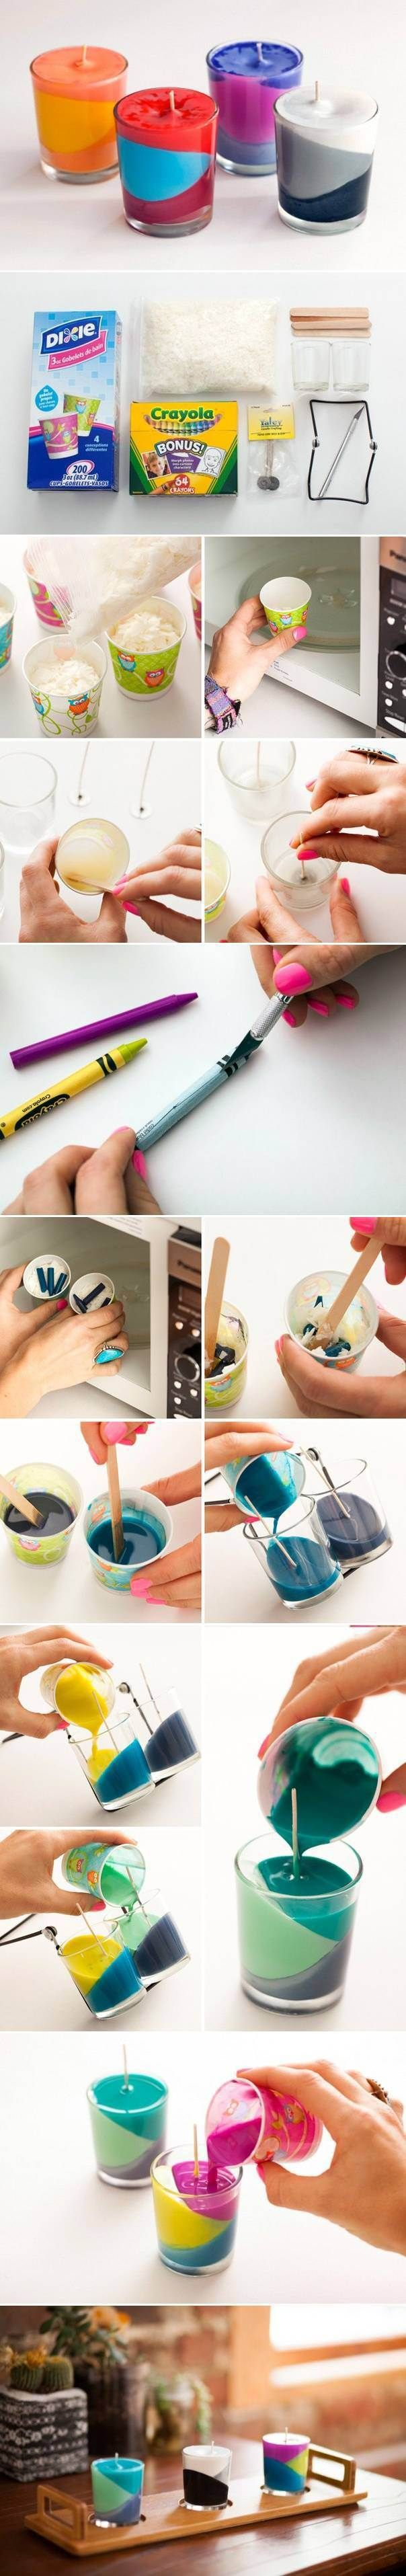 Pinned onto DIY Crafts Board in DIY Crafts Category